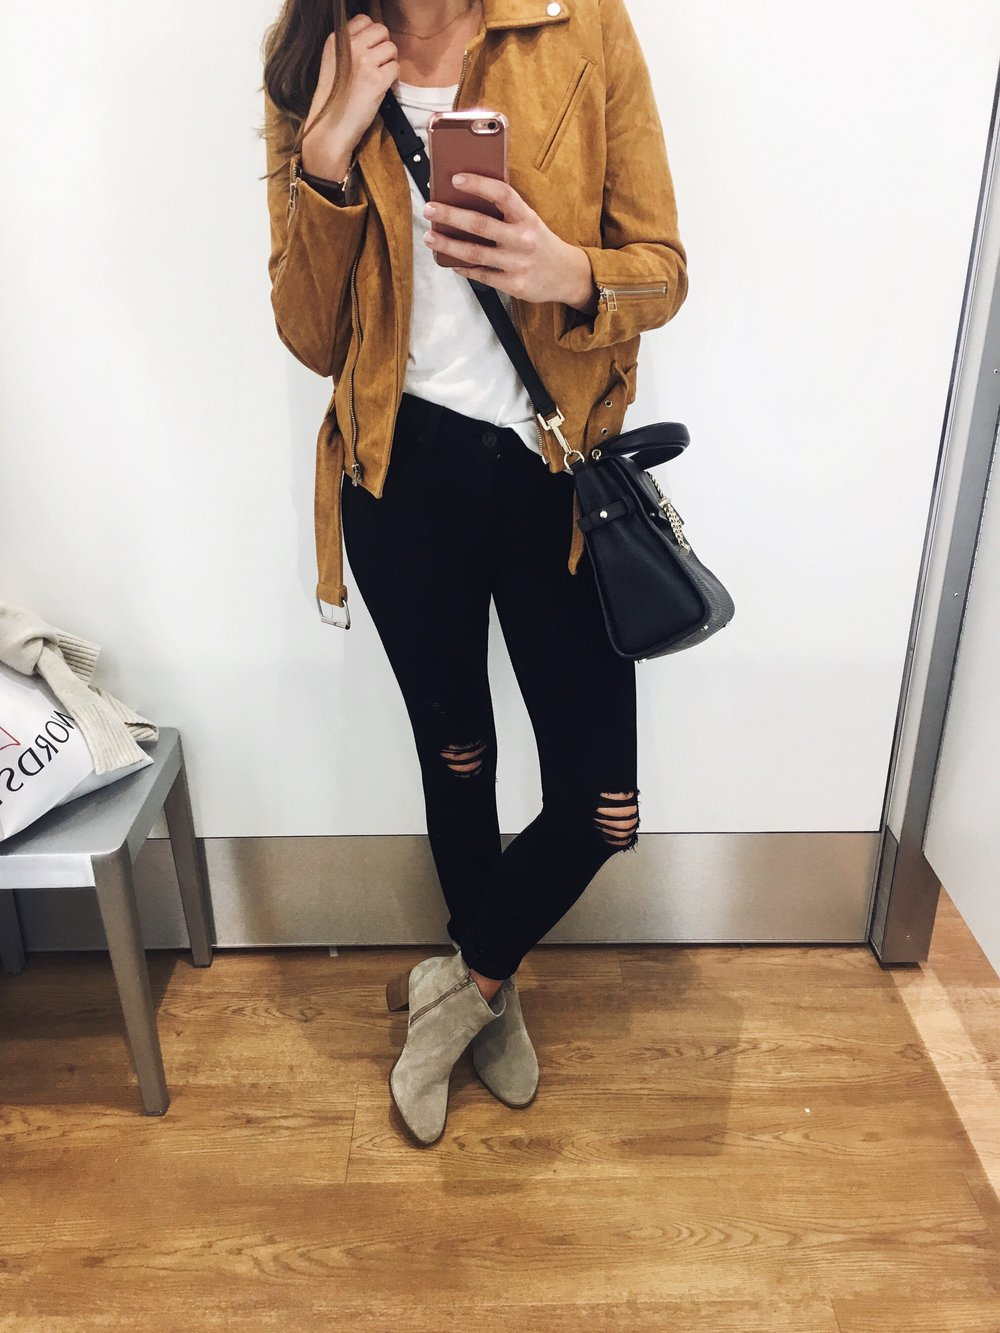 Jacket:  Shopbop . Bag:  LUANA Italy . Off-Shoulder Tee:  Urban Outfitters . Jeans: Hudson. Similar  here . Boots:  Coconuts by Matisse .